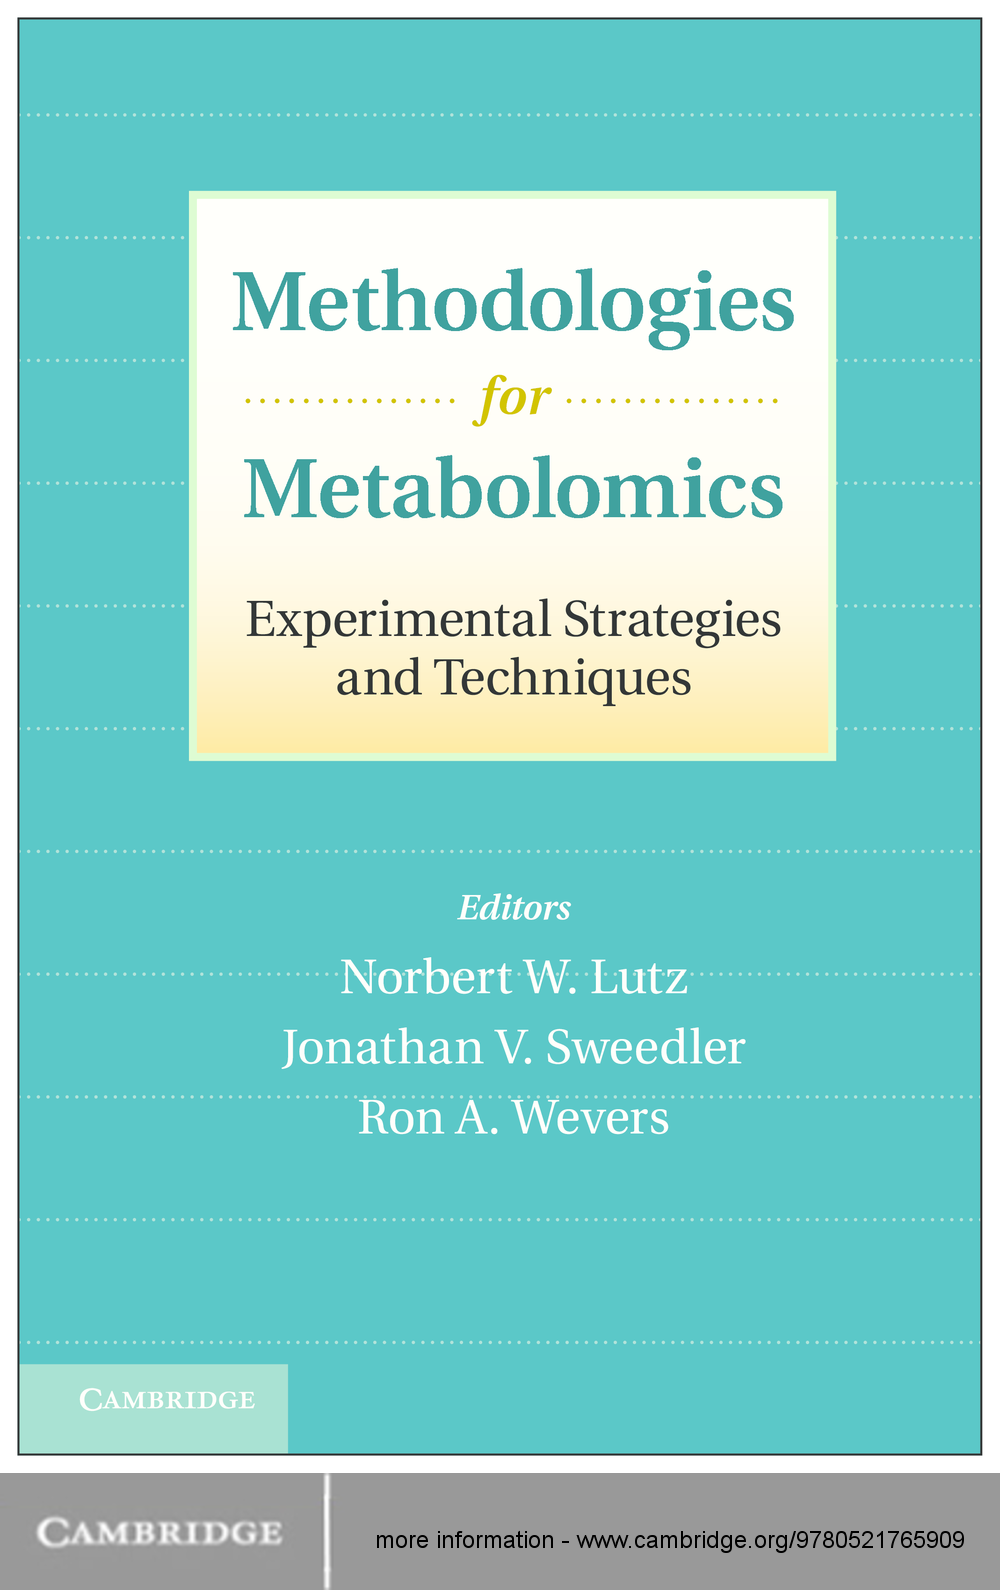 Methodologies for Metabolomics Experimental Strategies and Techniques